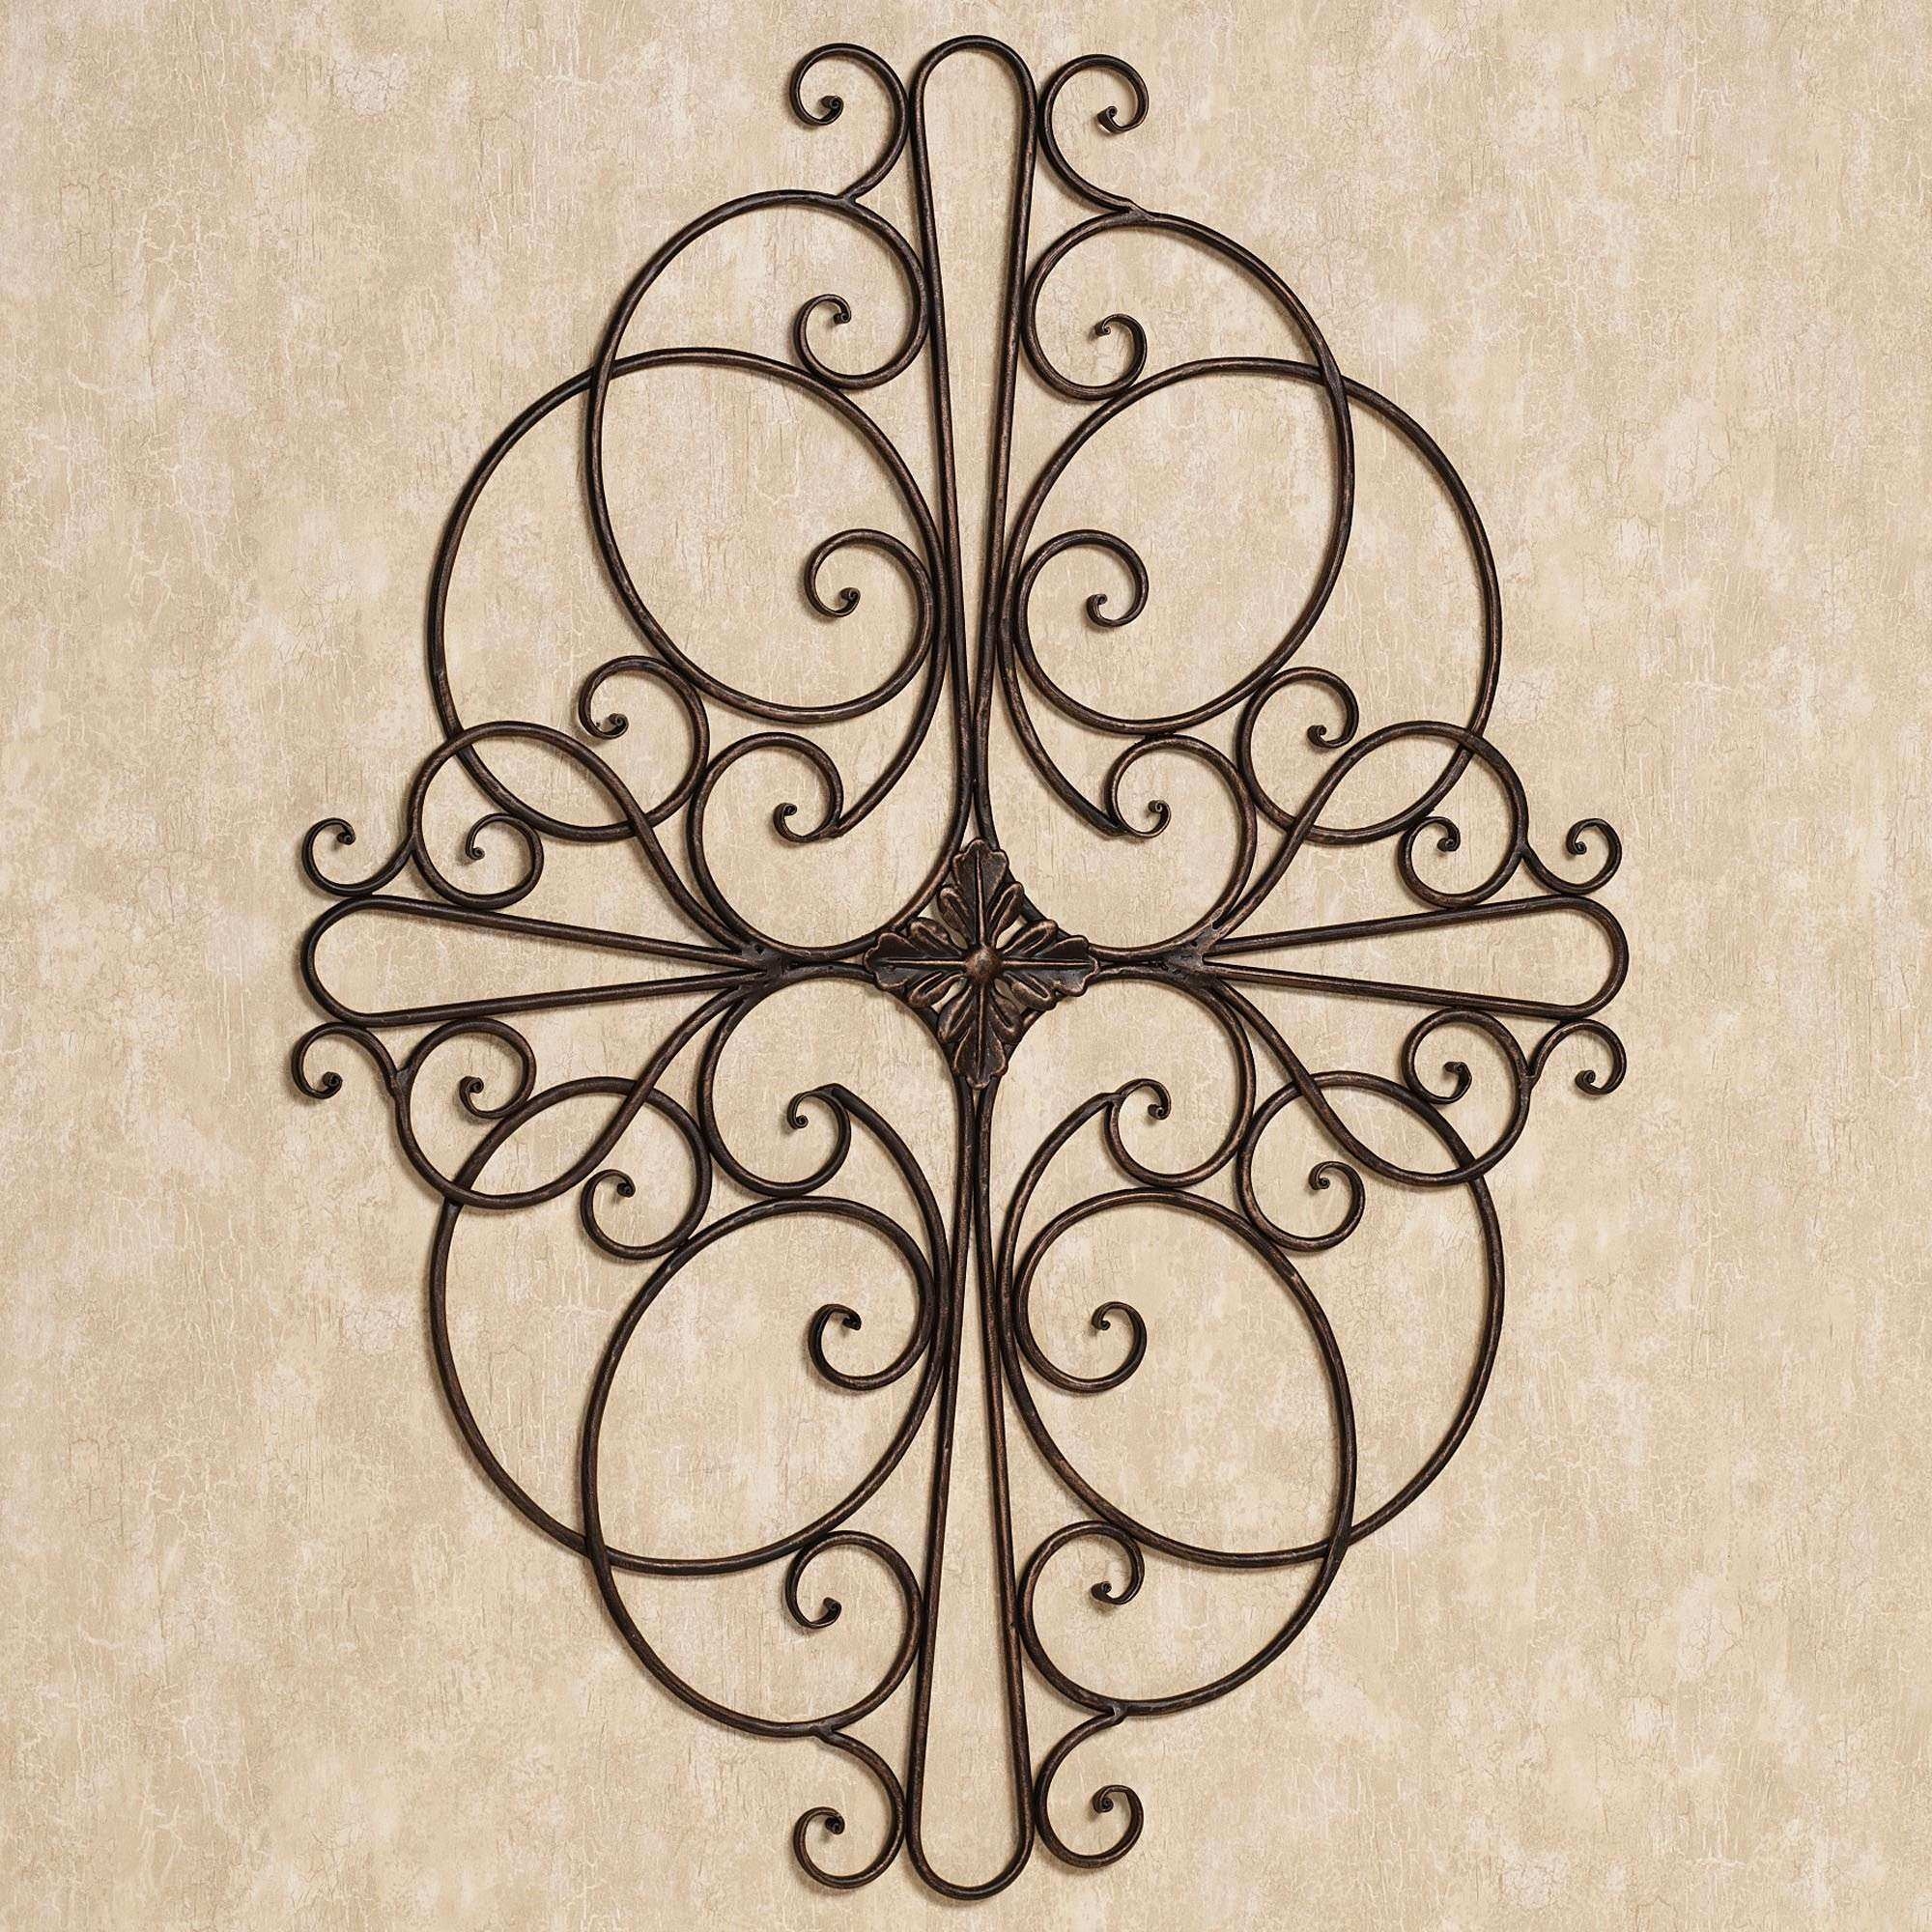 antique wrought iron wall decor Make It Artistic in